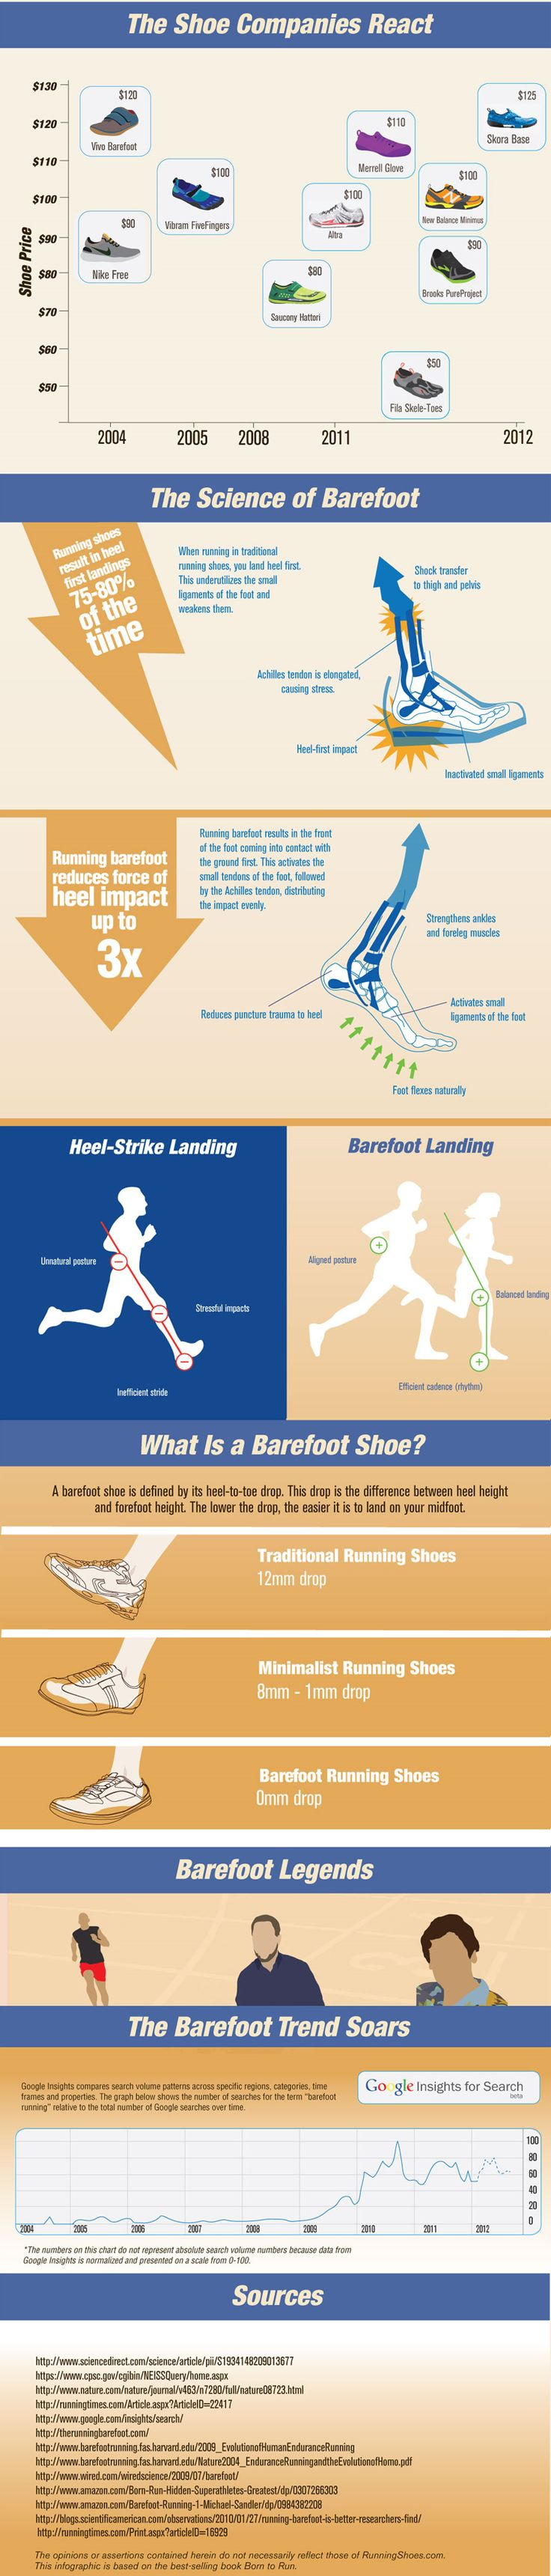 Barefoot Running :)  Great infographic!!  LOVE my New Balance Minimus!!